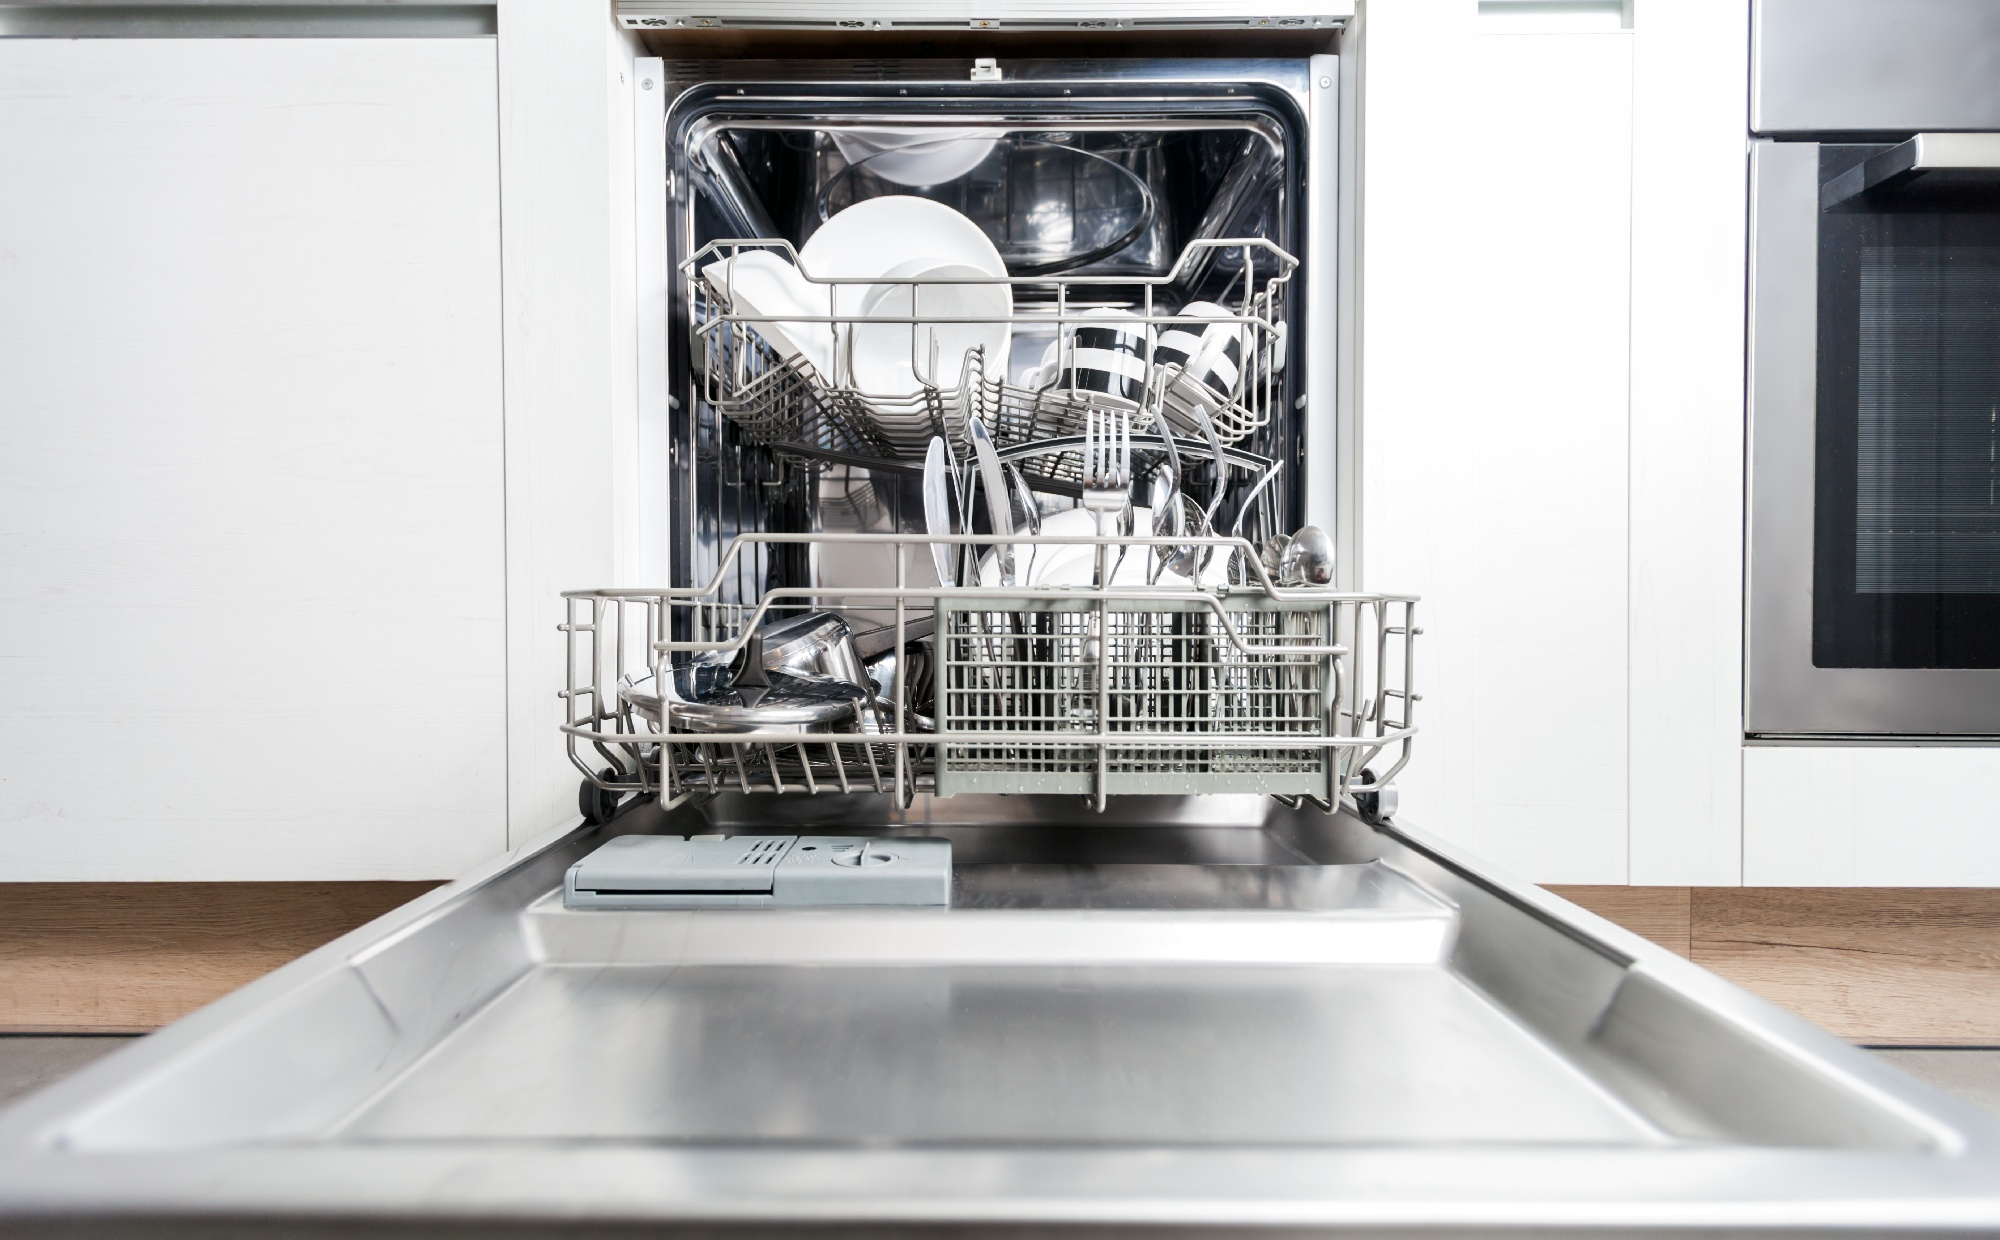 Dishwasher Repair KitchenAid: What Are Your Best Options?